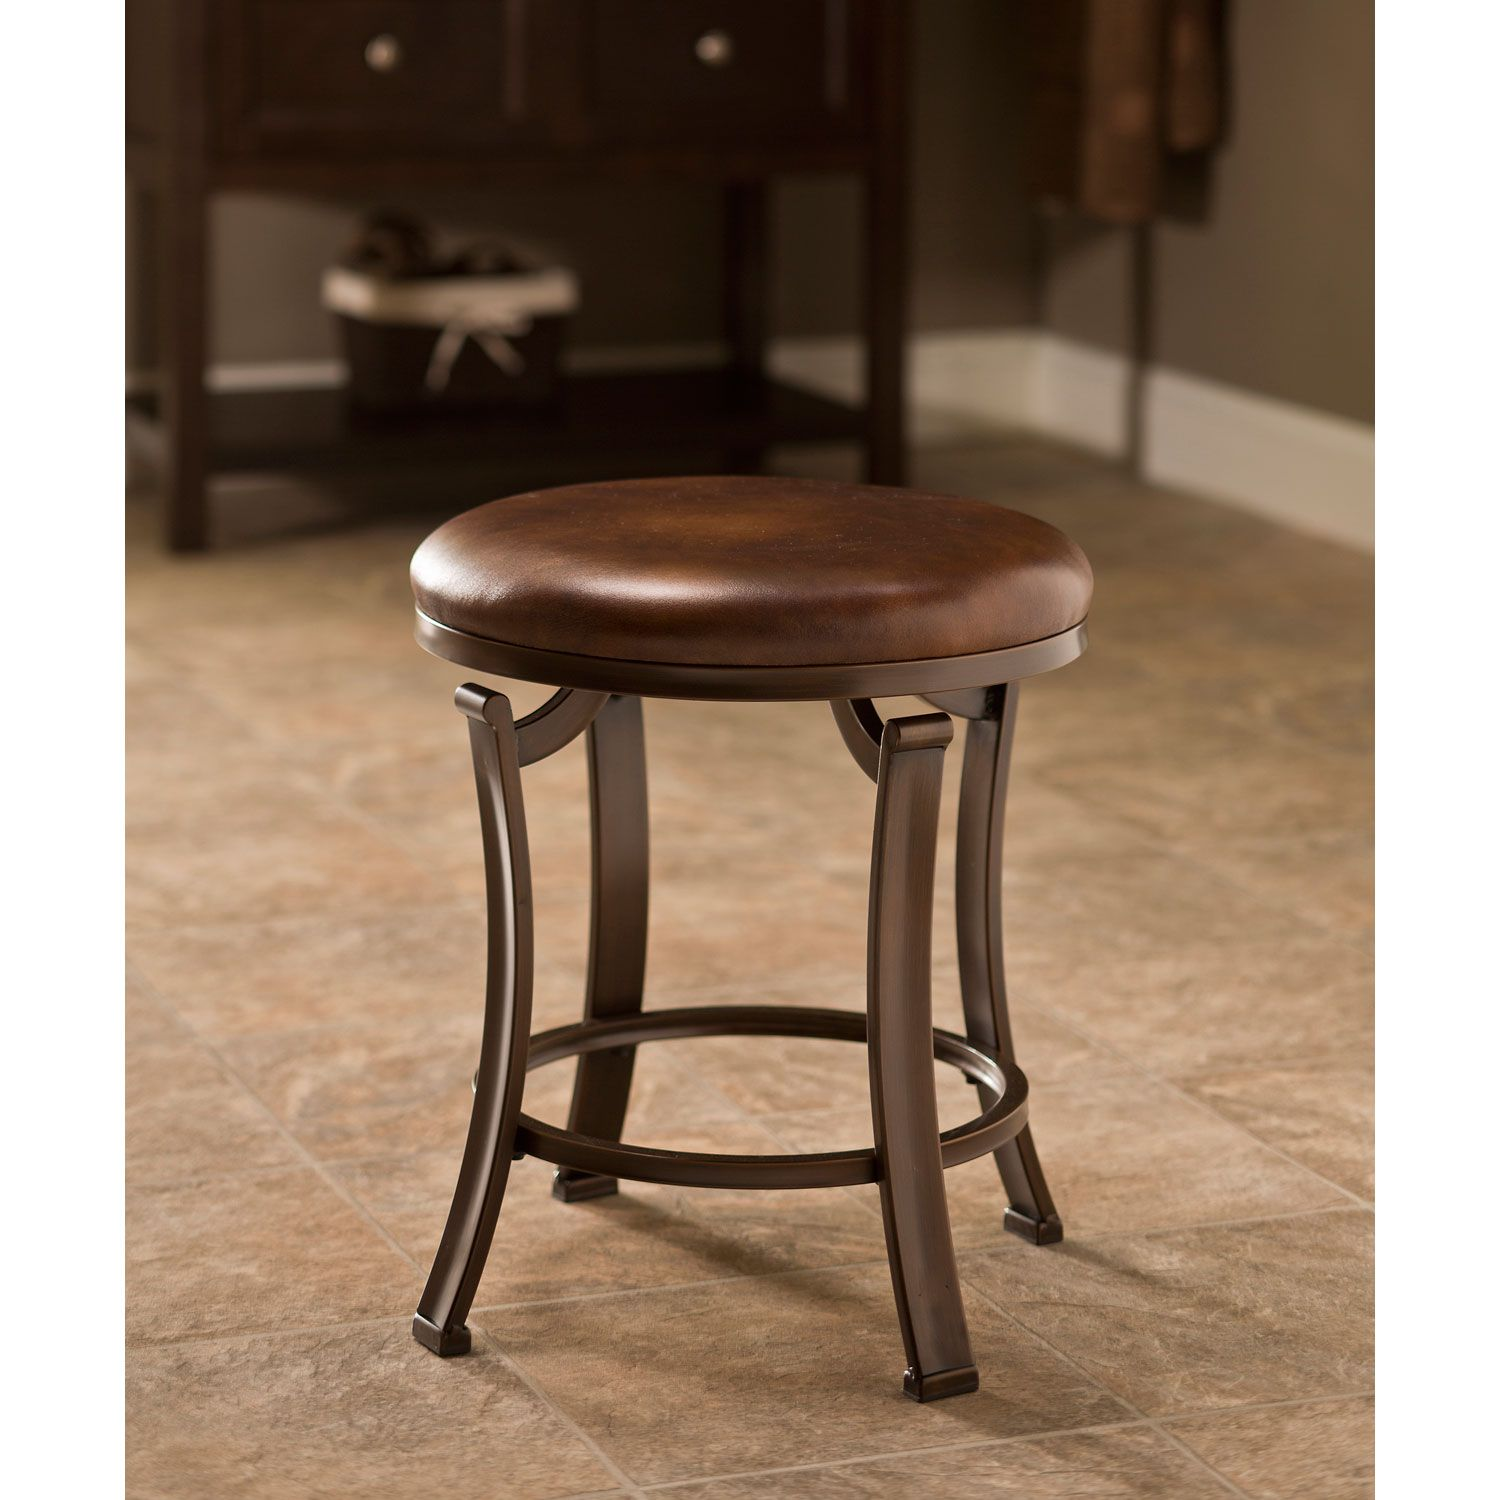 Wonderful Bathroom Vanity Stool Decoration Ideas